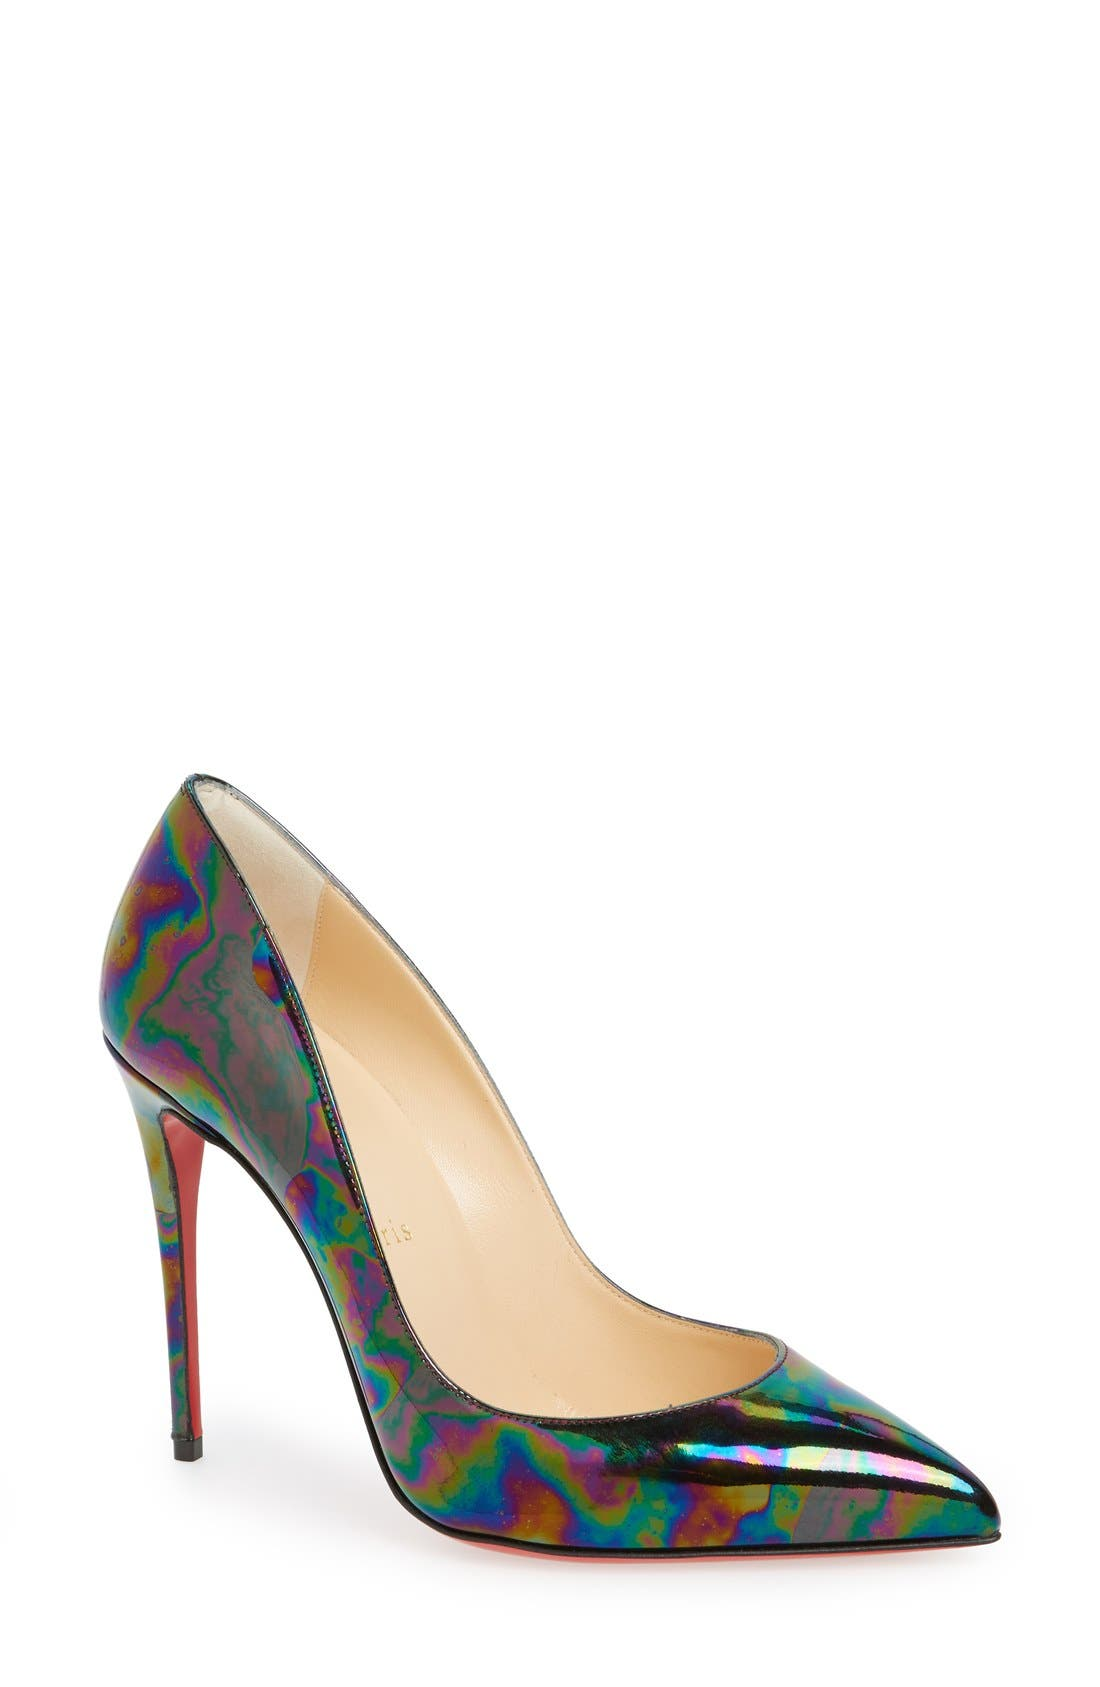 Main Image - Christian Louboutin 'Pigalle Follies' Pump (Women)